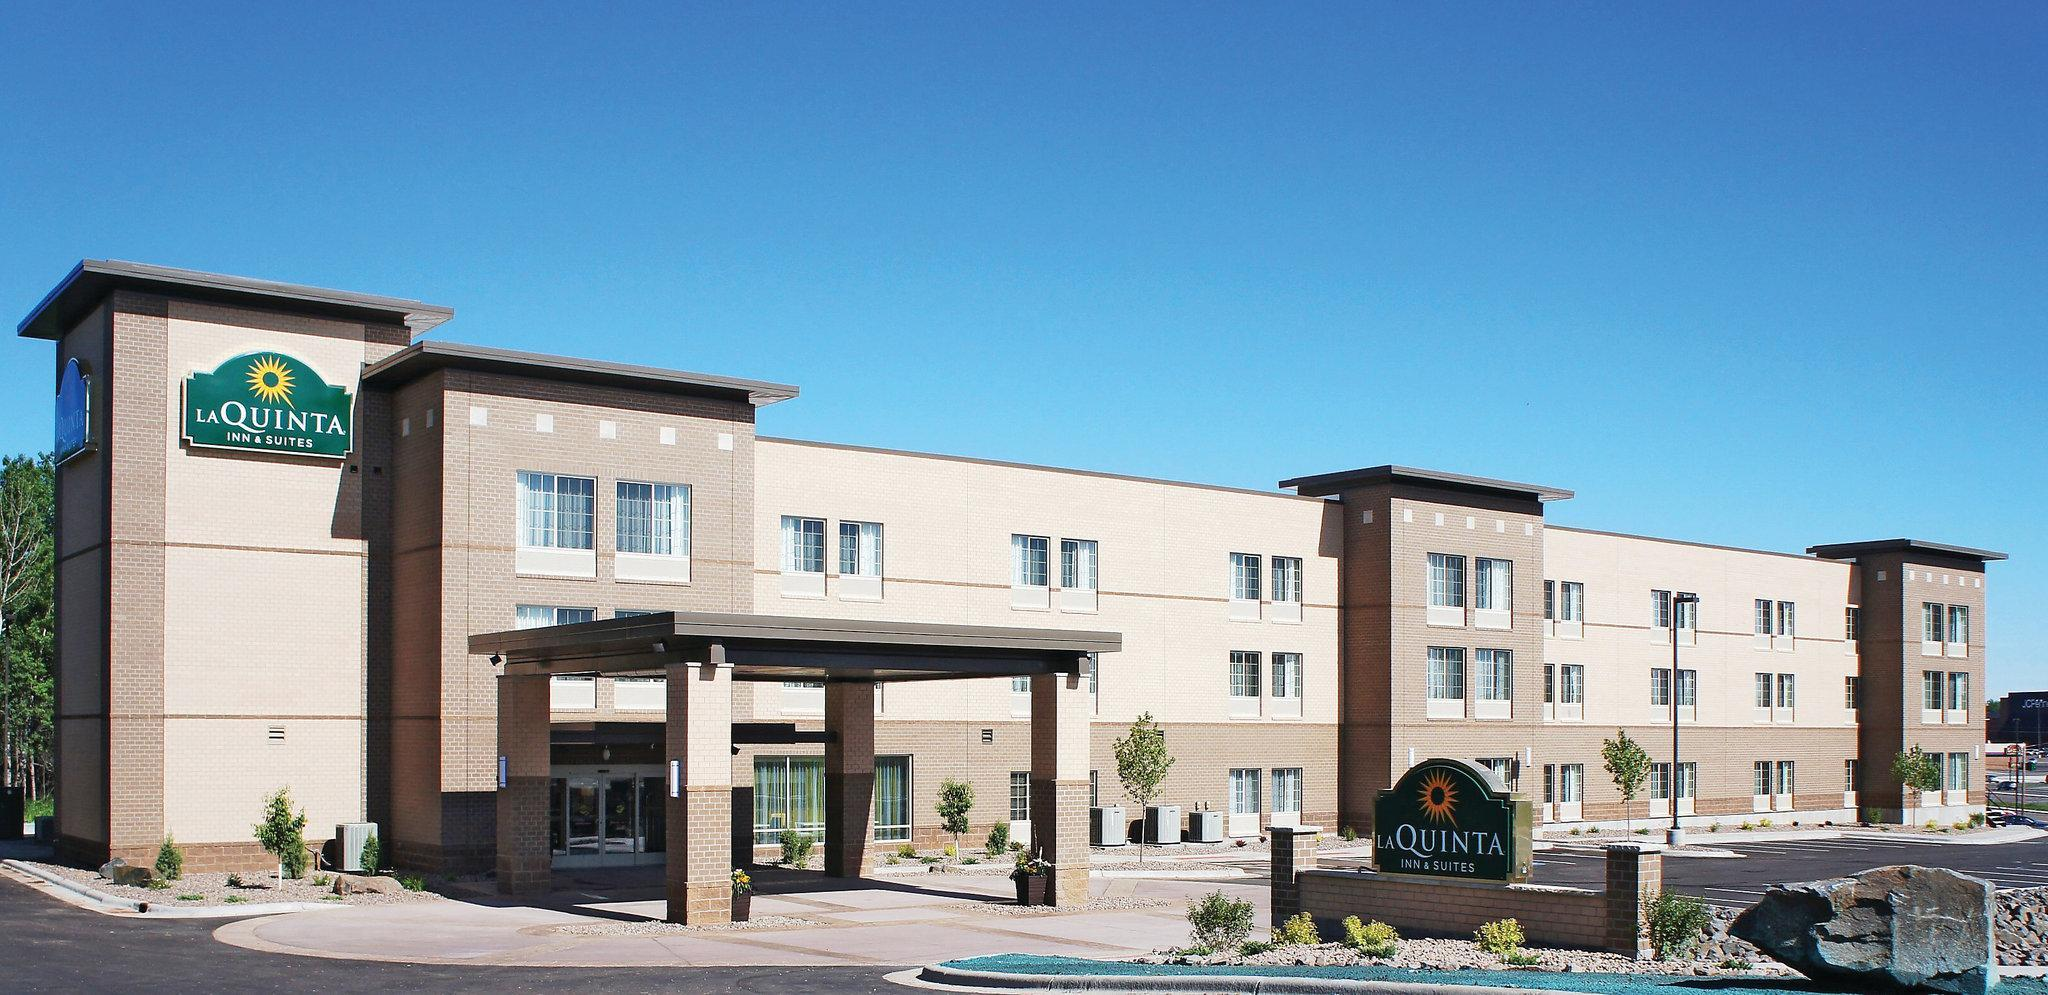 pet friendly hotels in duluth, mn bring fidopet friendly la quinta inn \u0026 suites duluth in duluth, mn